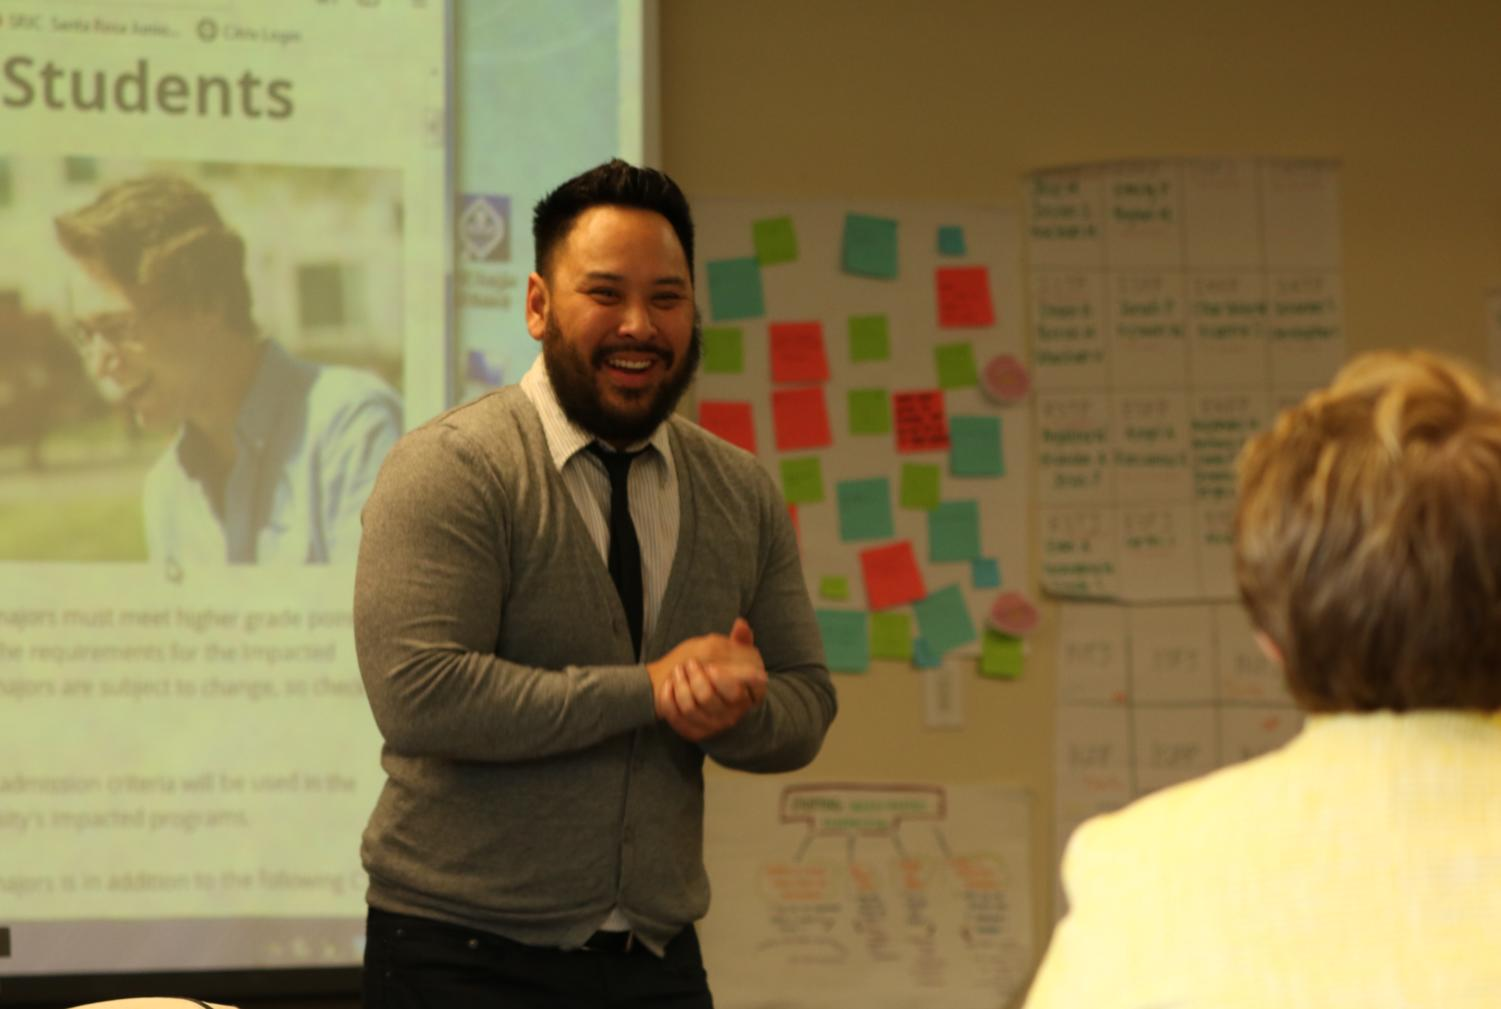 Alvin Nguyen, director of Sonoma State University's center for transfer and transition programs, designed the new intake advising program for transfer students.